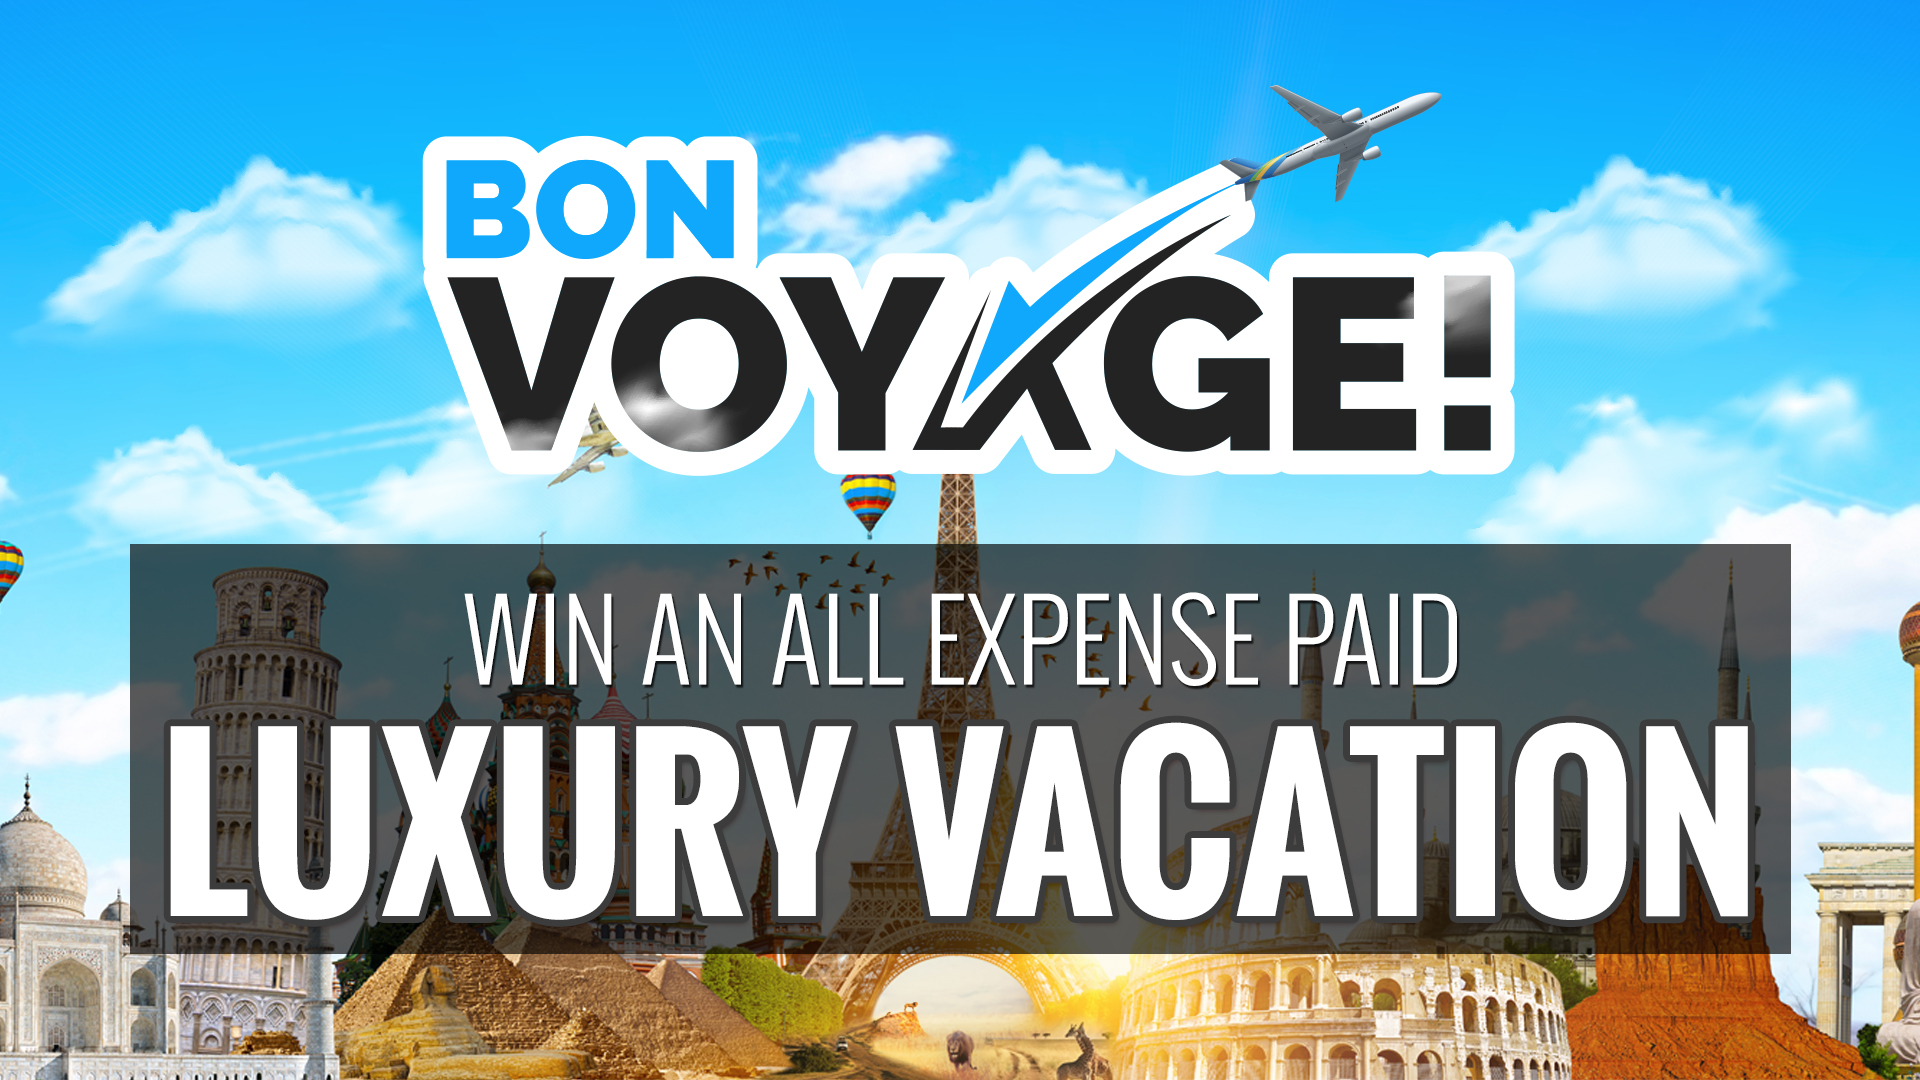 Playground wants to wish you Bon Voyage!